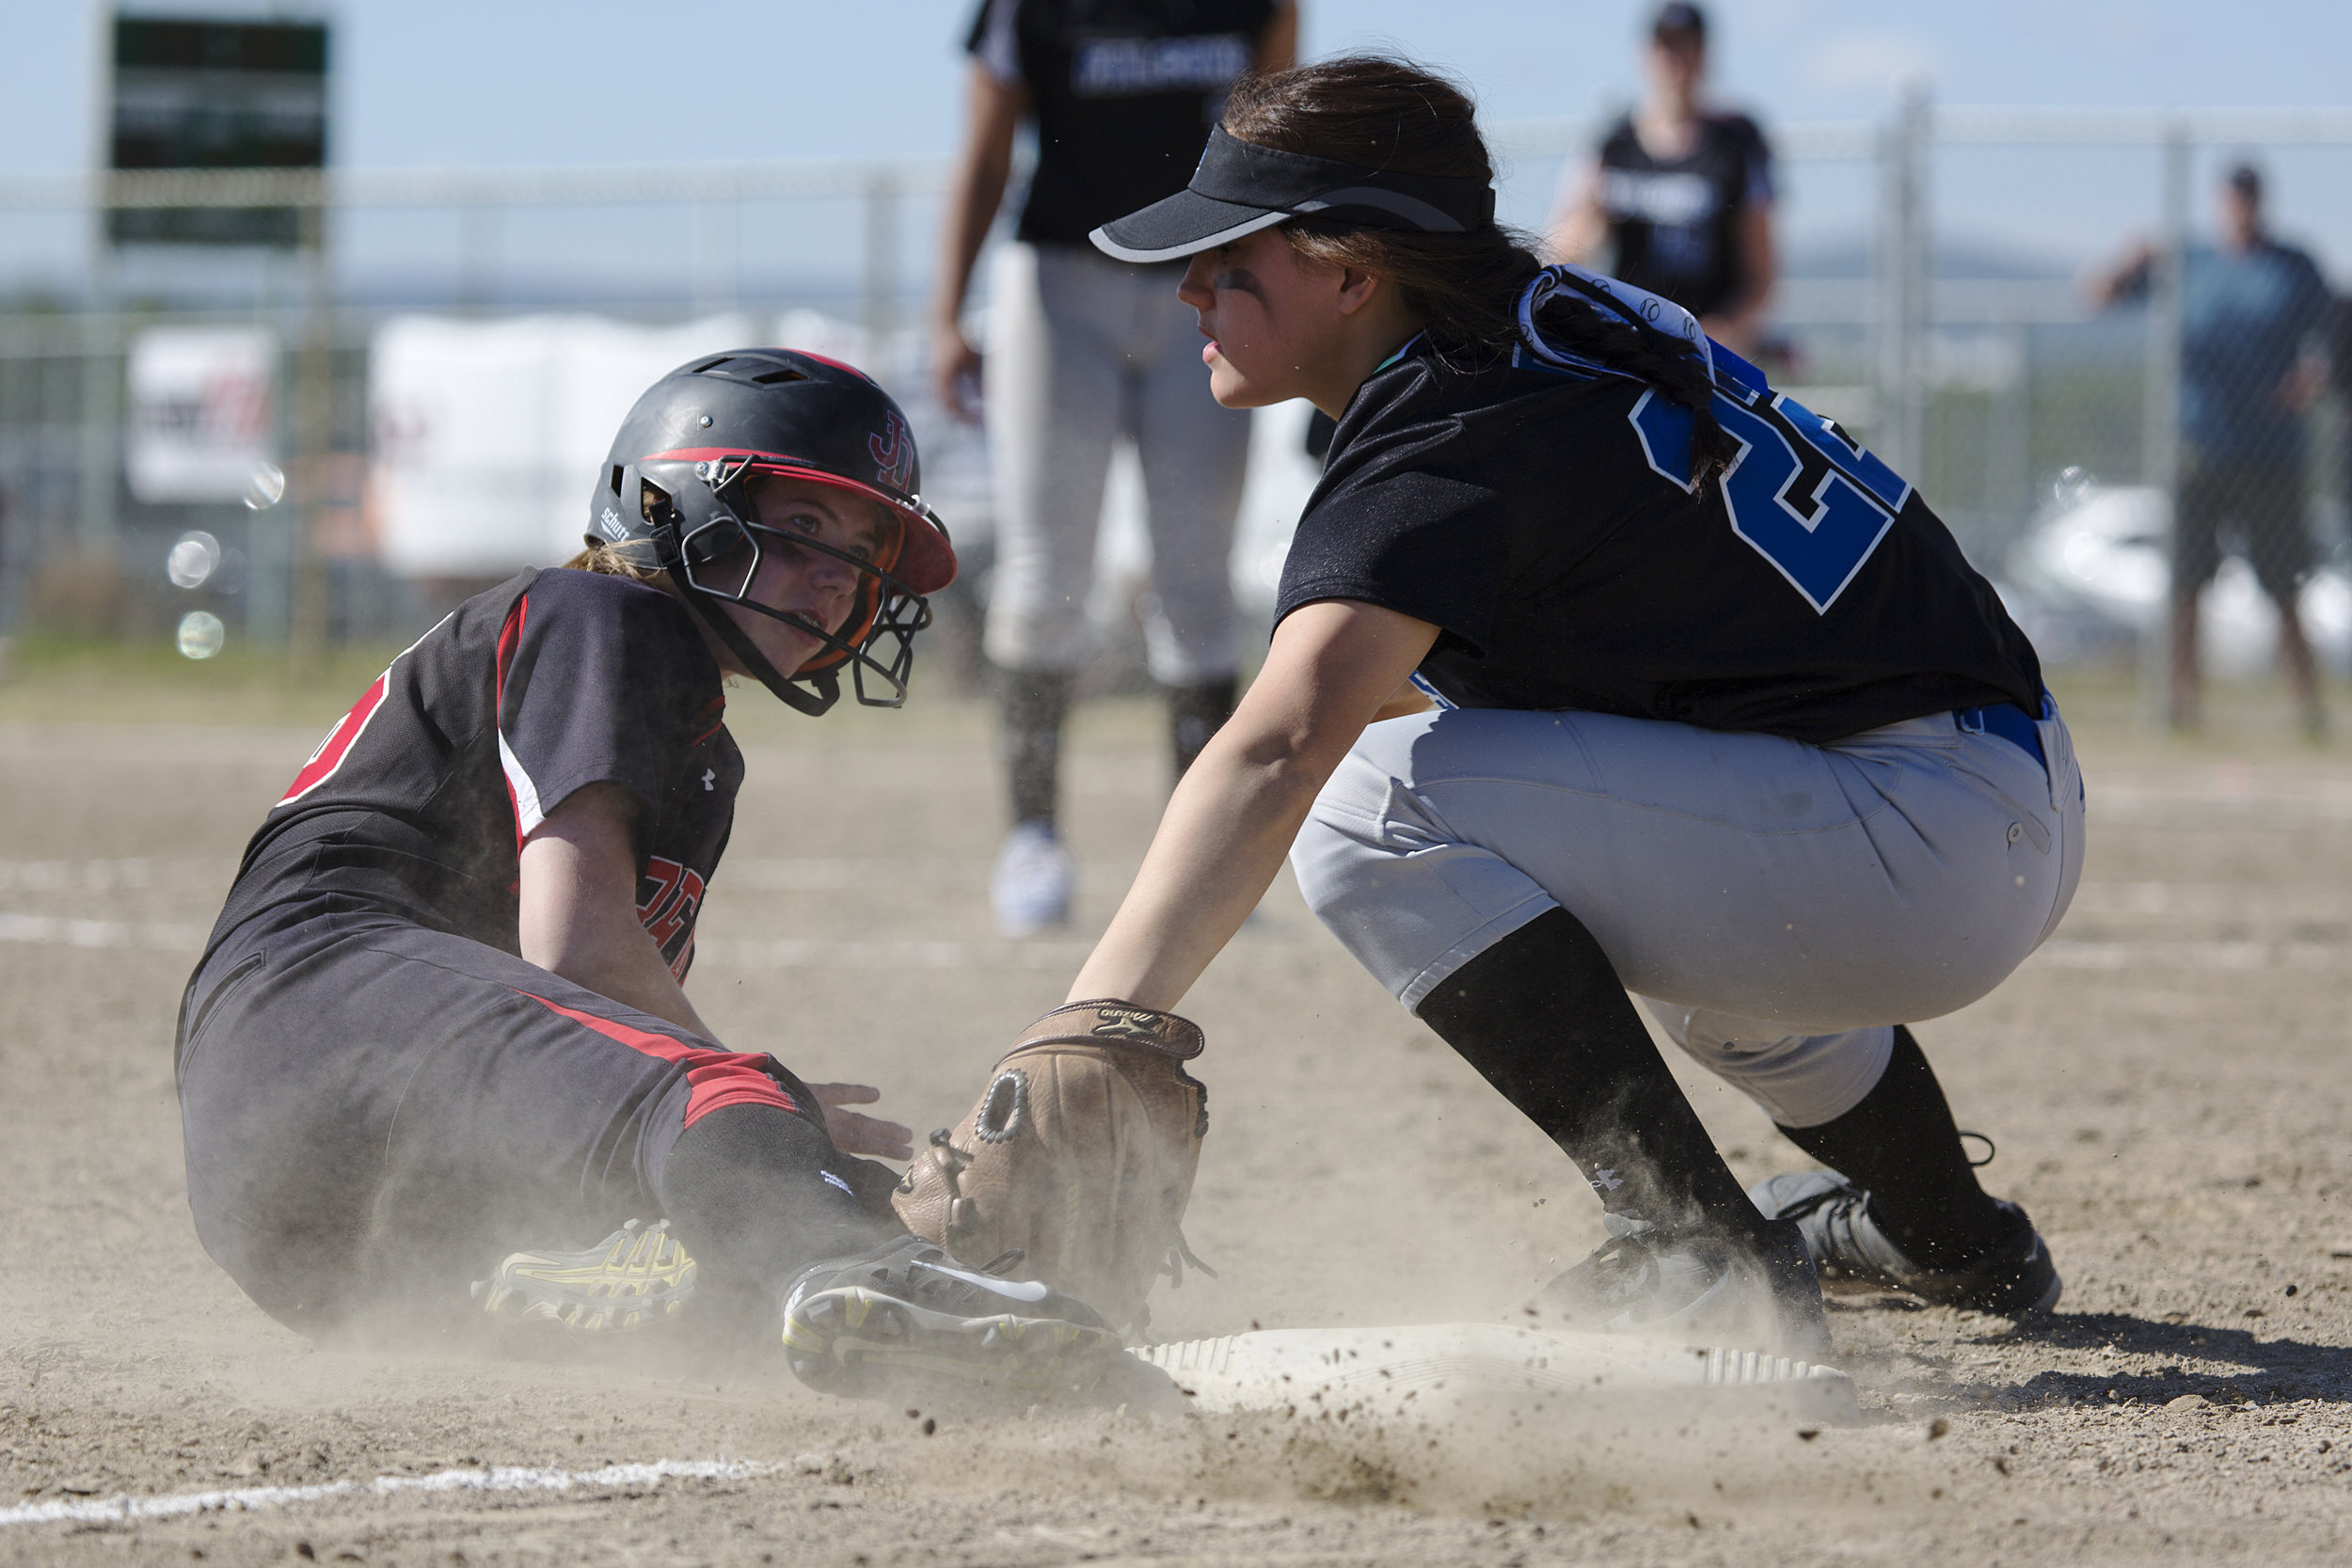 Juneau Douglas, Elisa Fabrello (2) (left) misses third base and is tagged out by Thunder Mountain, Alondra Echiverri (22) (right) who caught the ball moments before Fabrello slid onto the base in the finals for the State Championship Softball game on Saturday, June 3rd in the South Davis Park Complex in Fairbanks, AK. Sarah Manriquez/ Juneau Empire